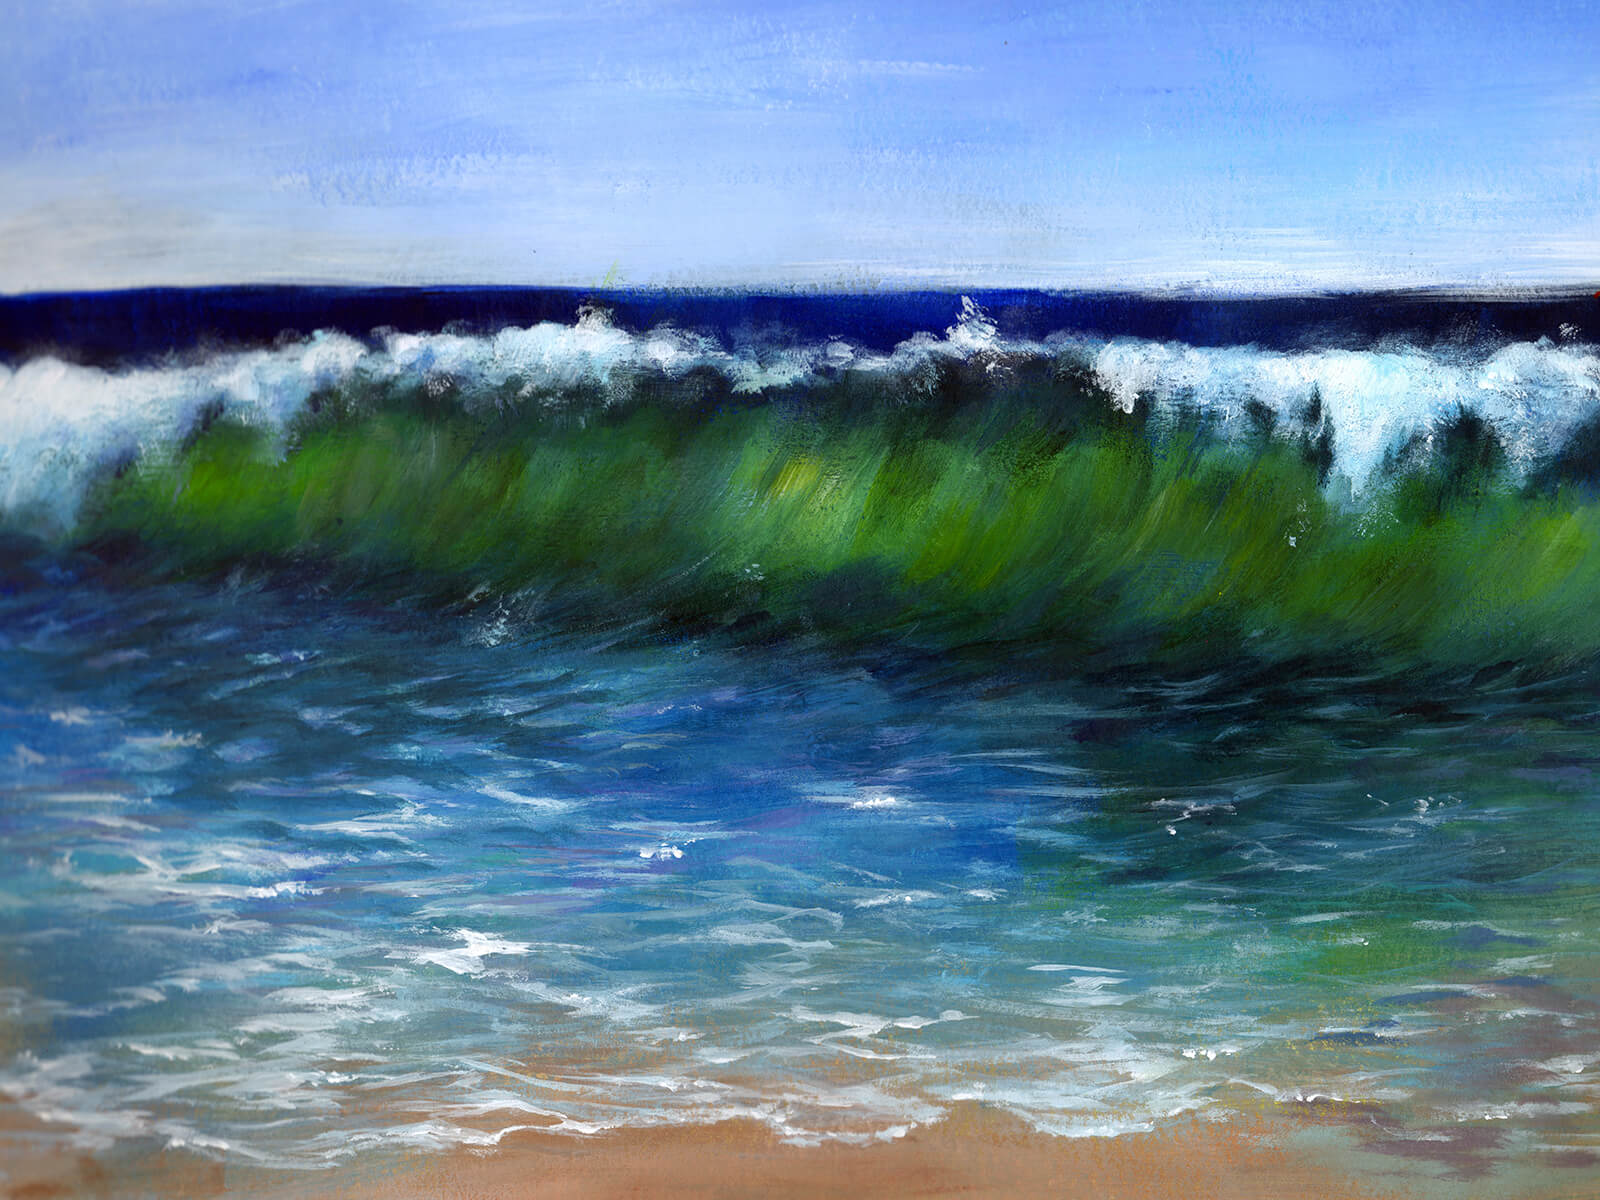 A greenish wave crests toward the viewer near a sandy shore. Blue skies and a deeply blue ocean are seen behind.